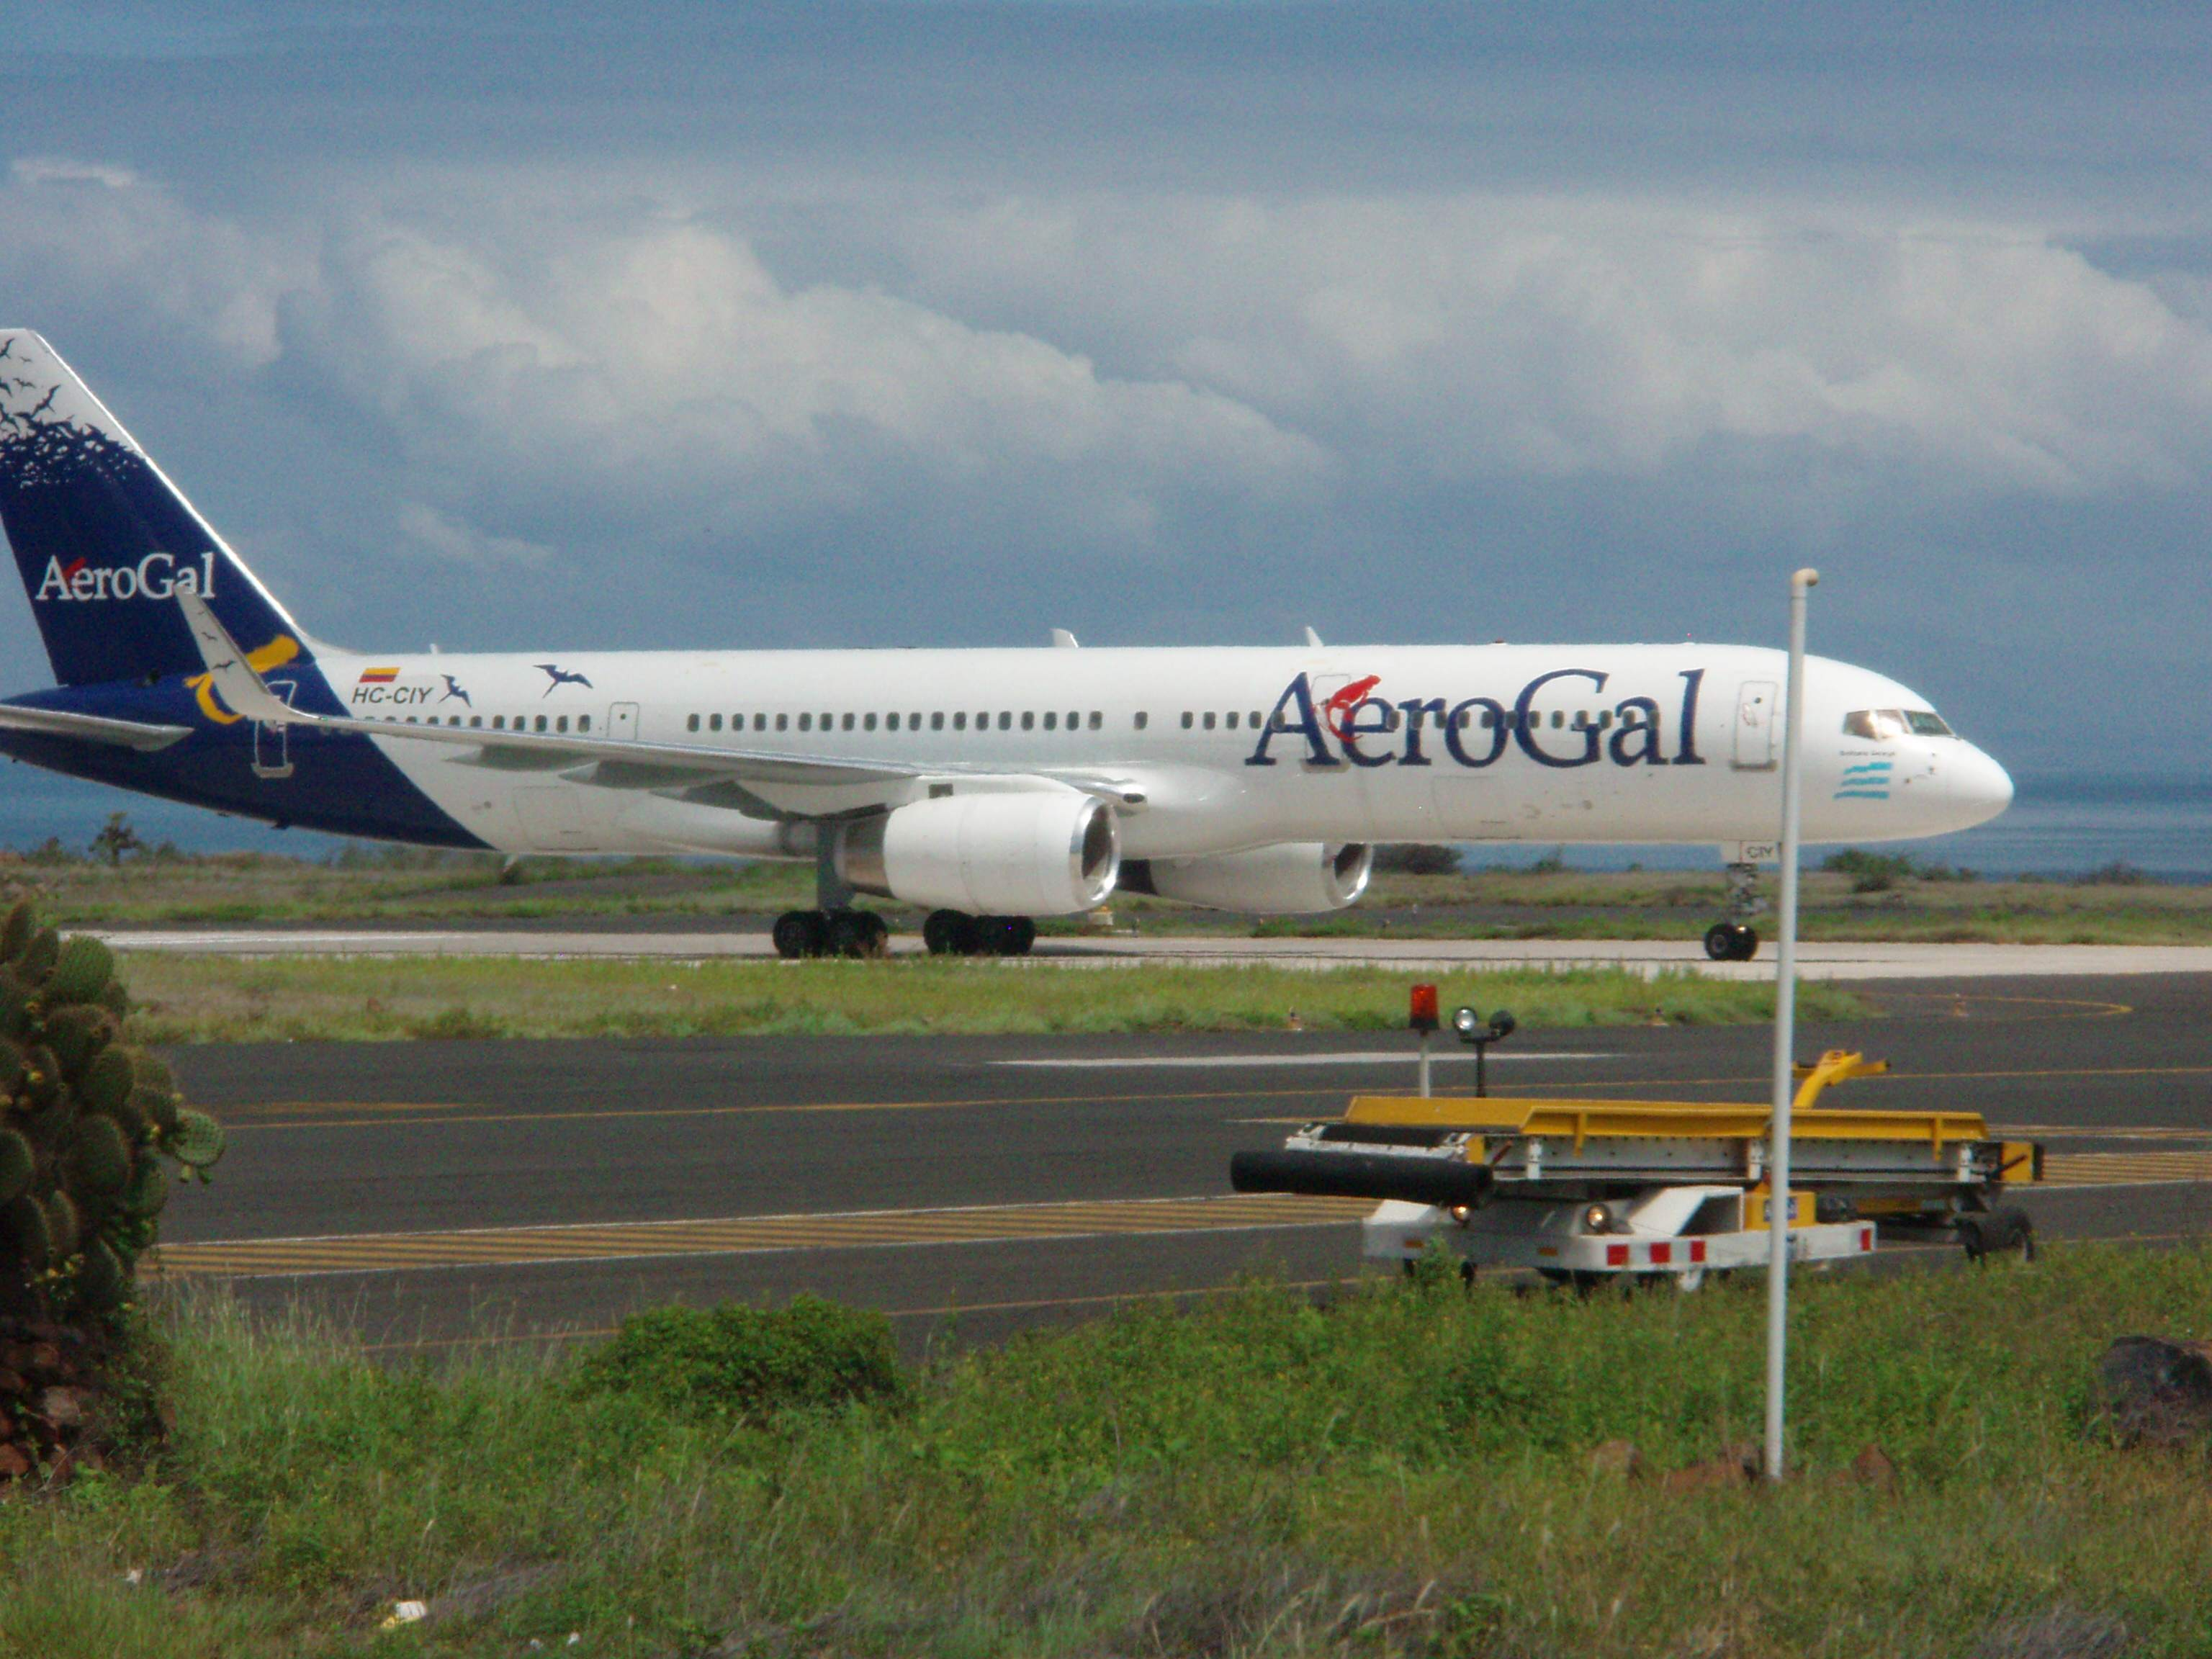 AeroGal Airliner taxiing in after landing on the Galapagos Islands.